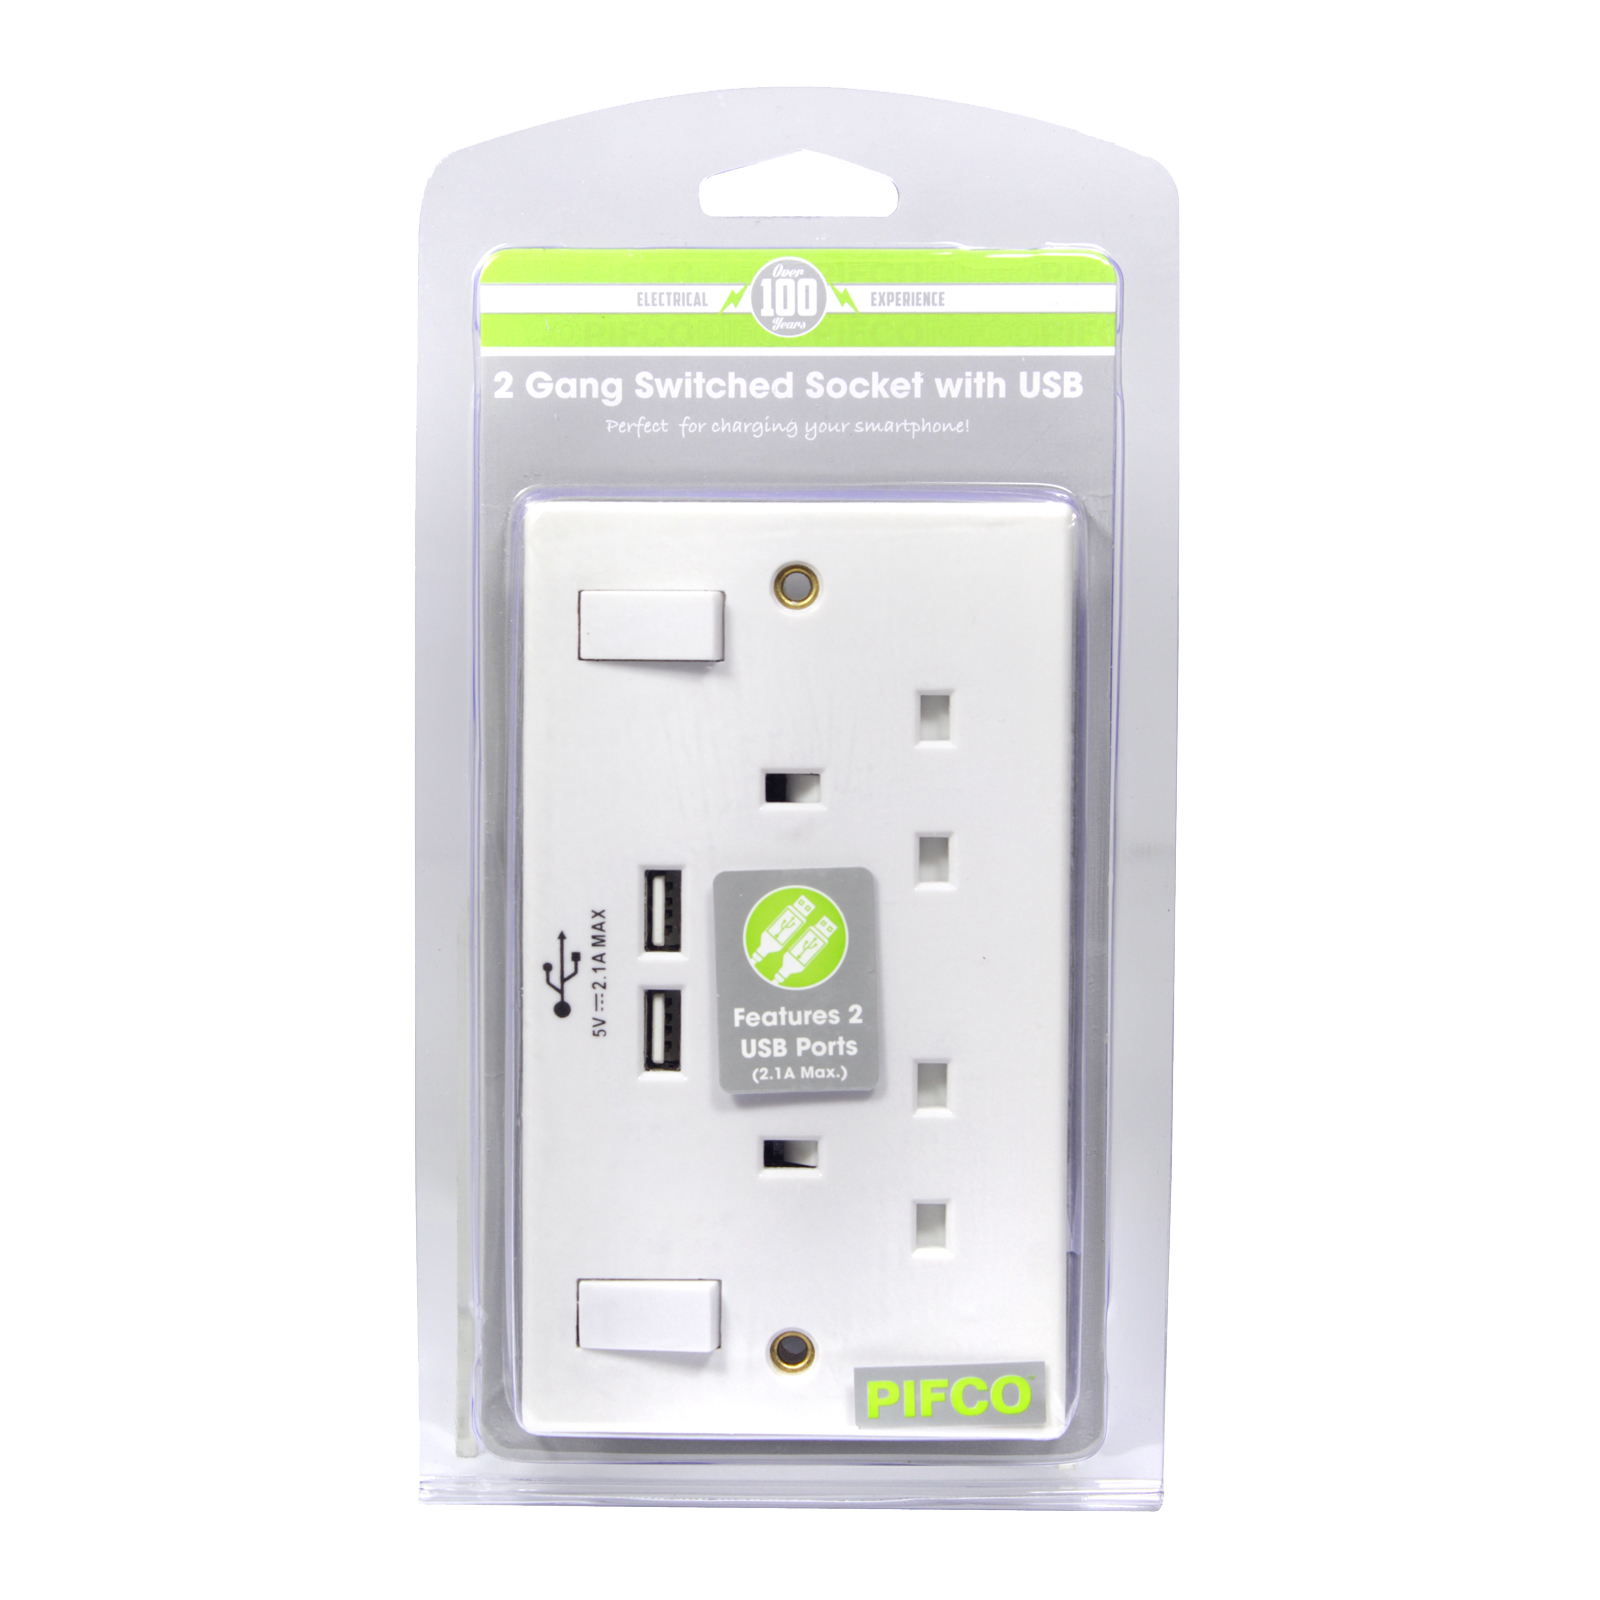 PIFCO SWITCH SOCKET 2GANG+2USB PORTS